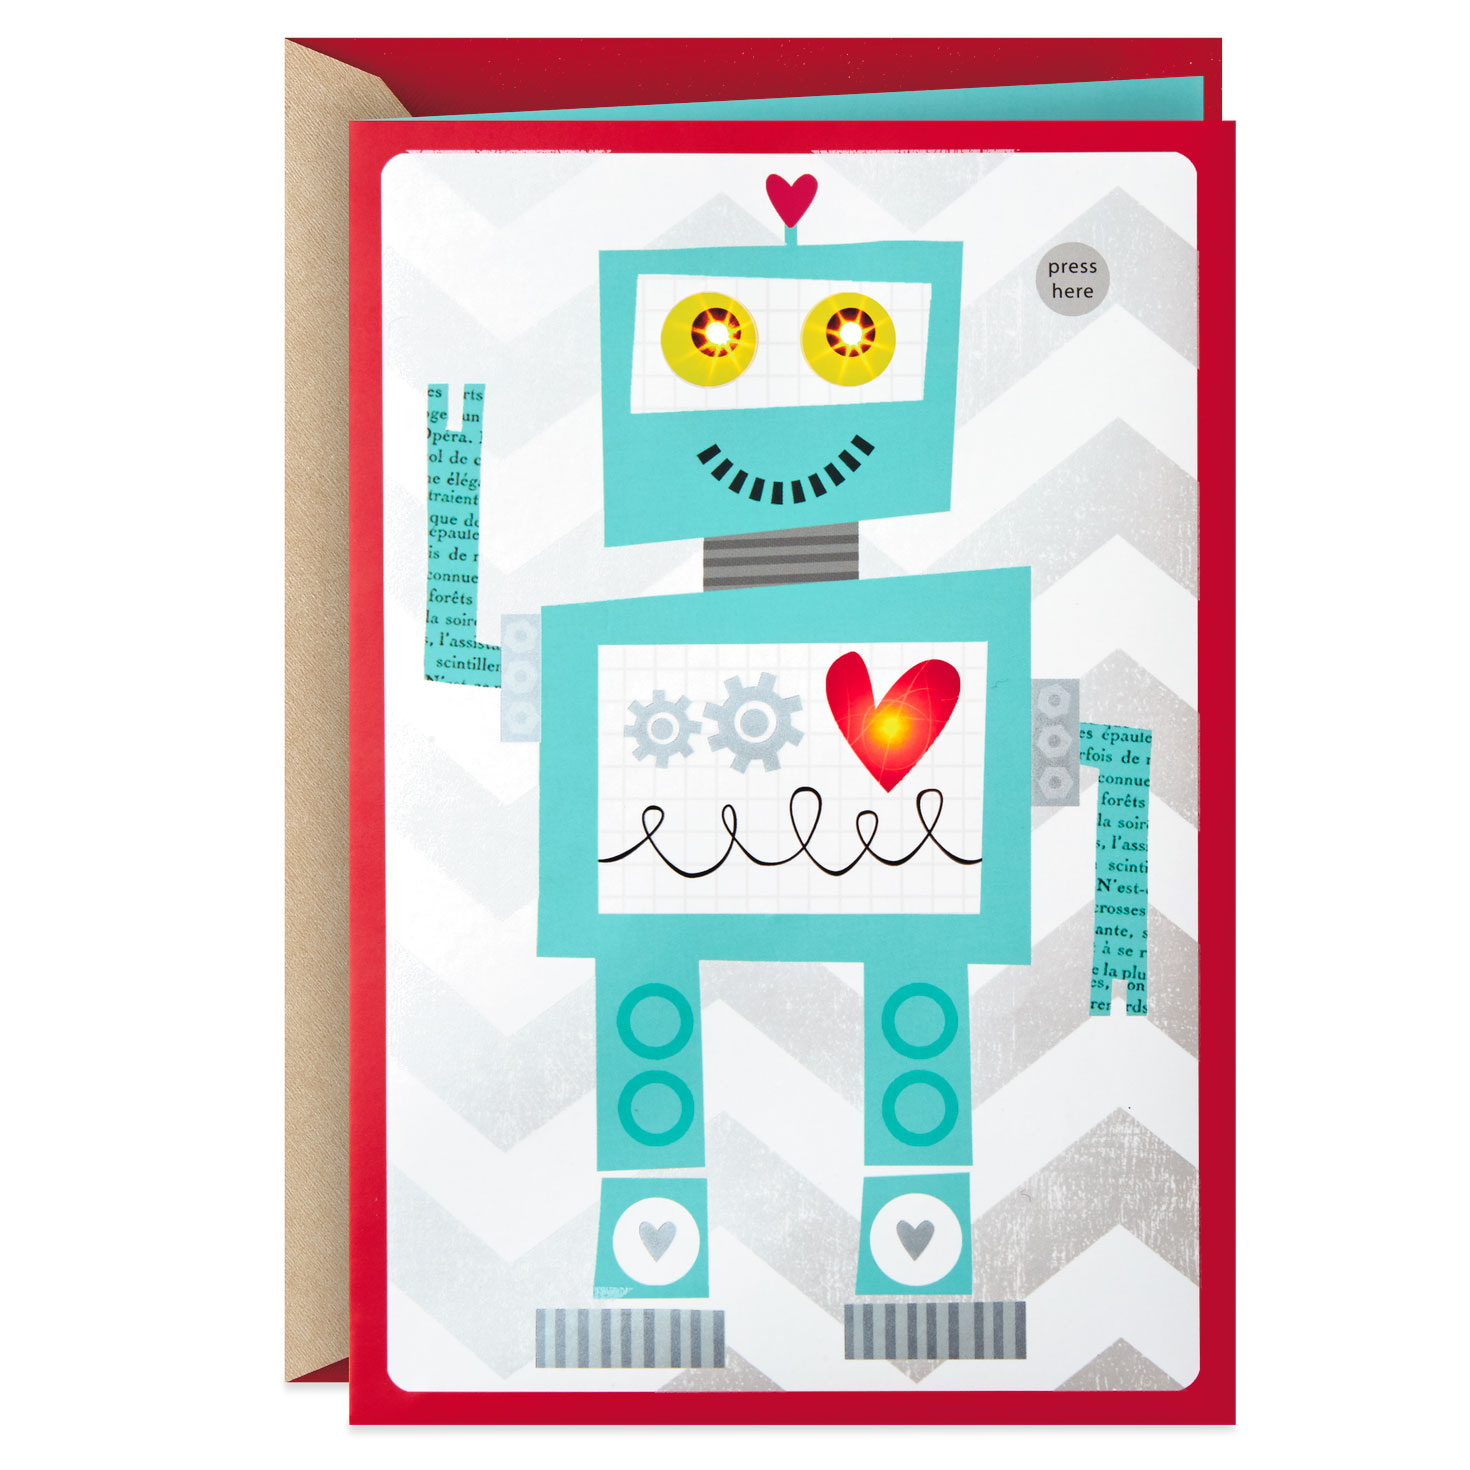 robot valentine's day card for kids with sound  greeting